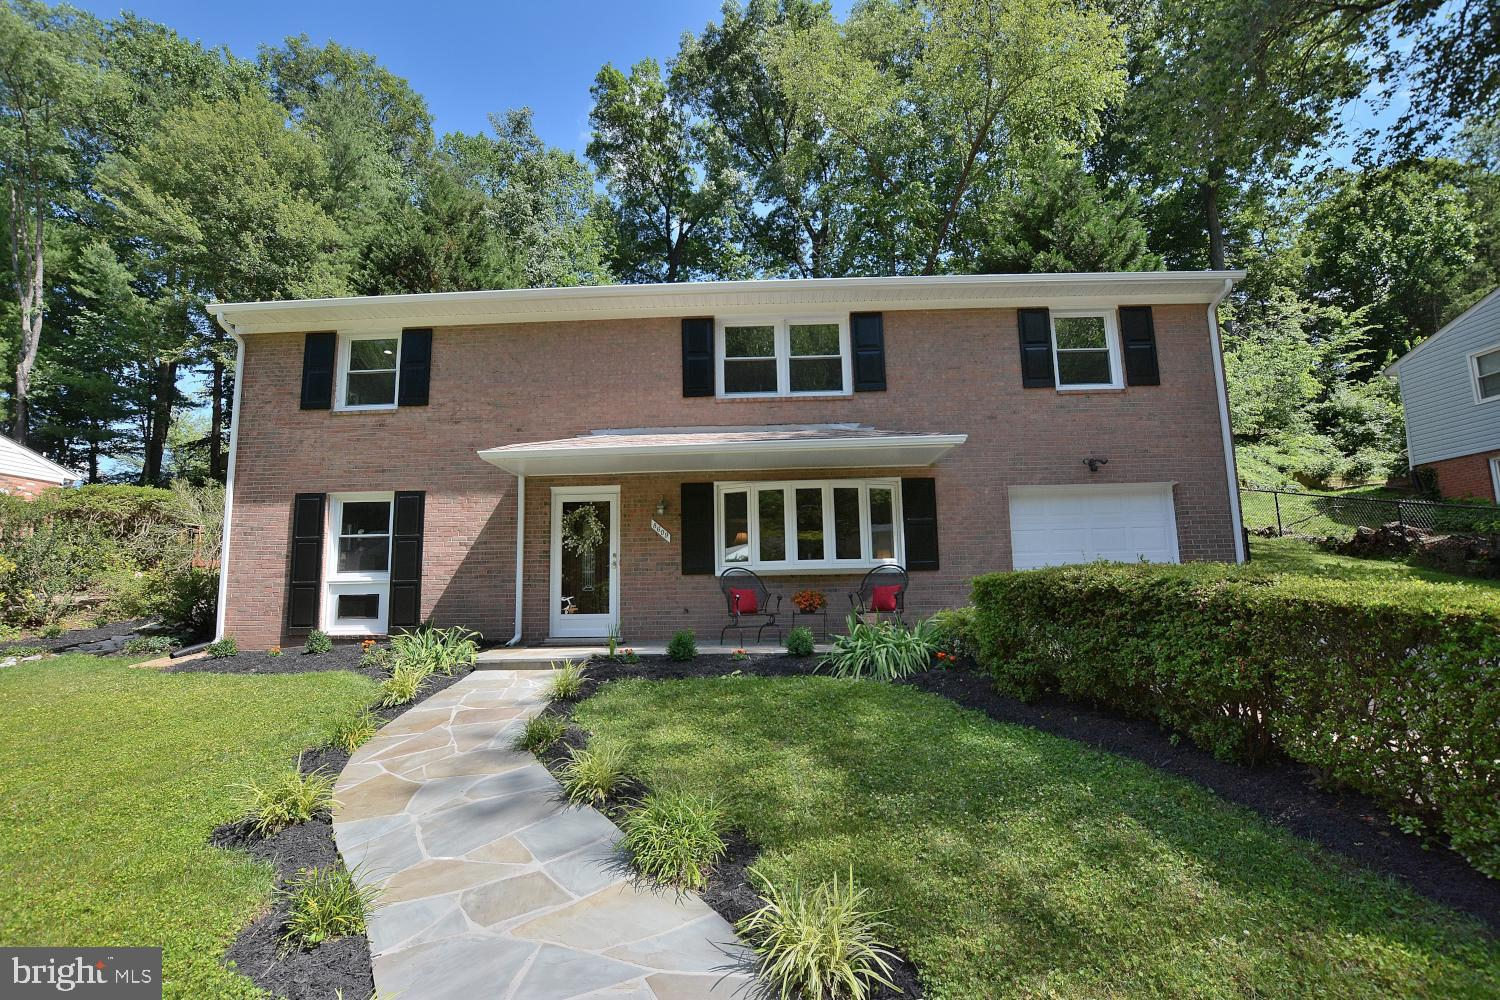 Welcome Home!  This immaculate all brick home on a terrific lot is turn-key ready for new owners!  Some of the many updates include designer inspired fresh interior paint, updated HVAC, beautifully refinished hardwood flooring, updated lighting, updated gutters and downspouts and fresh exterior paint.  The Main Level includes a spacious Living Room with large bow window for plentiful natural sunlight, separate Dining Room with wood flooring and chair rail adjacent to the tastefully updated Gourmet Kitchen with quartz countertops, dimmable under cabinet and  overhead recessed lighting, stylish back splash, ceramic flooring, stainless steel appliances, plentiful cabinetry and gas cooking.  Also, on the main level are the convenient Powder Room, Laundry/Utility room with washer and dryer and access to 1 car garage. The upper level features hardwood flooring, a spacious Family Room with dimmable recessed lighting, plentiful natural light and sliding glass doors leading out to the expansive stone patio and large rear yard.  Other features of the upper level include the Master Suite with full bath, 3 additional spacious Bedrooms and remodeled Guest Bath.Be sure to note the stone lead walk and patio leading to the front entrance as well as the large stone patios in the rear which are perfect for outdoor entertaining, one of which features a patio swing and is covered by a trellis & Whisteria providing a shaded area for those hot summer days.  Located in highly sought-after West Springfield High School pyramid. Great commuter location close to Bus lines, Slug lines, Fairfax County Parkway, Fort Belvoir, Metro/VRE, not to mention the great surrounding shopping and restaurants, including Springfield Towne Center.  Be sure this one is on your list!